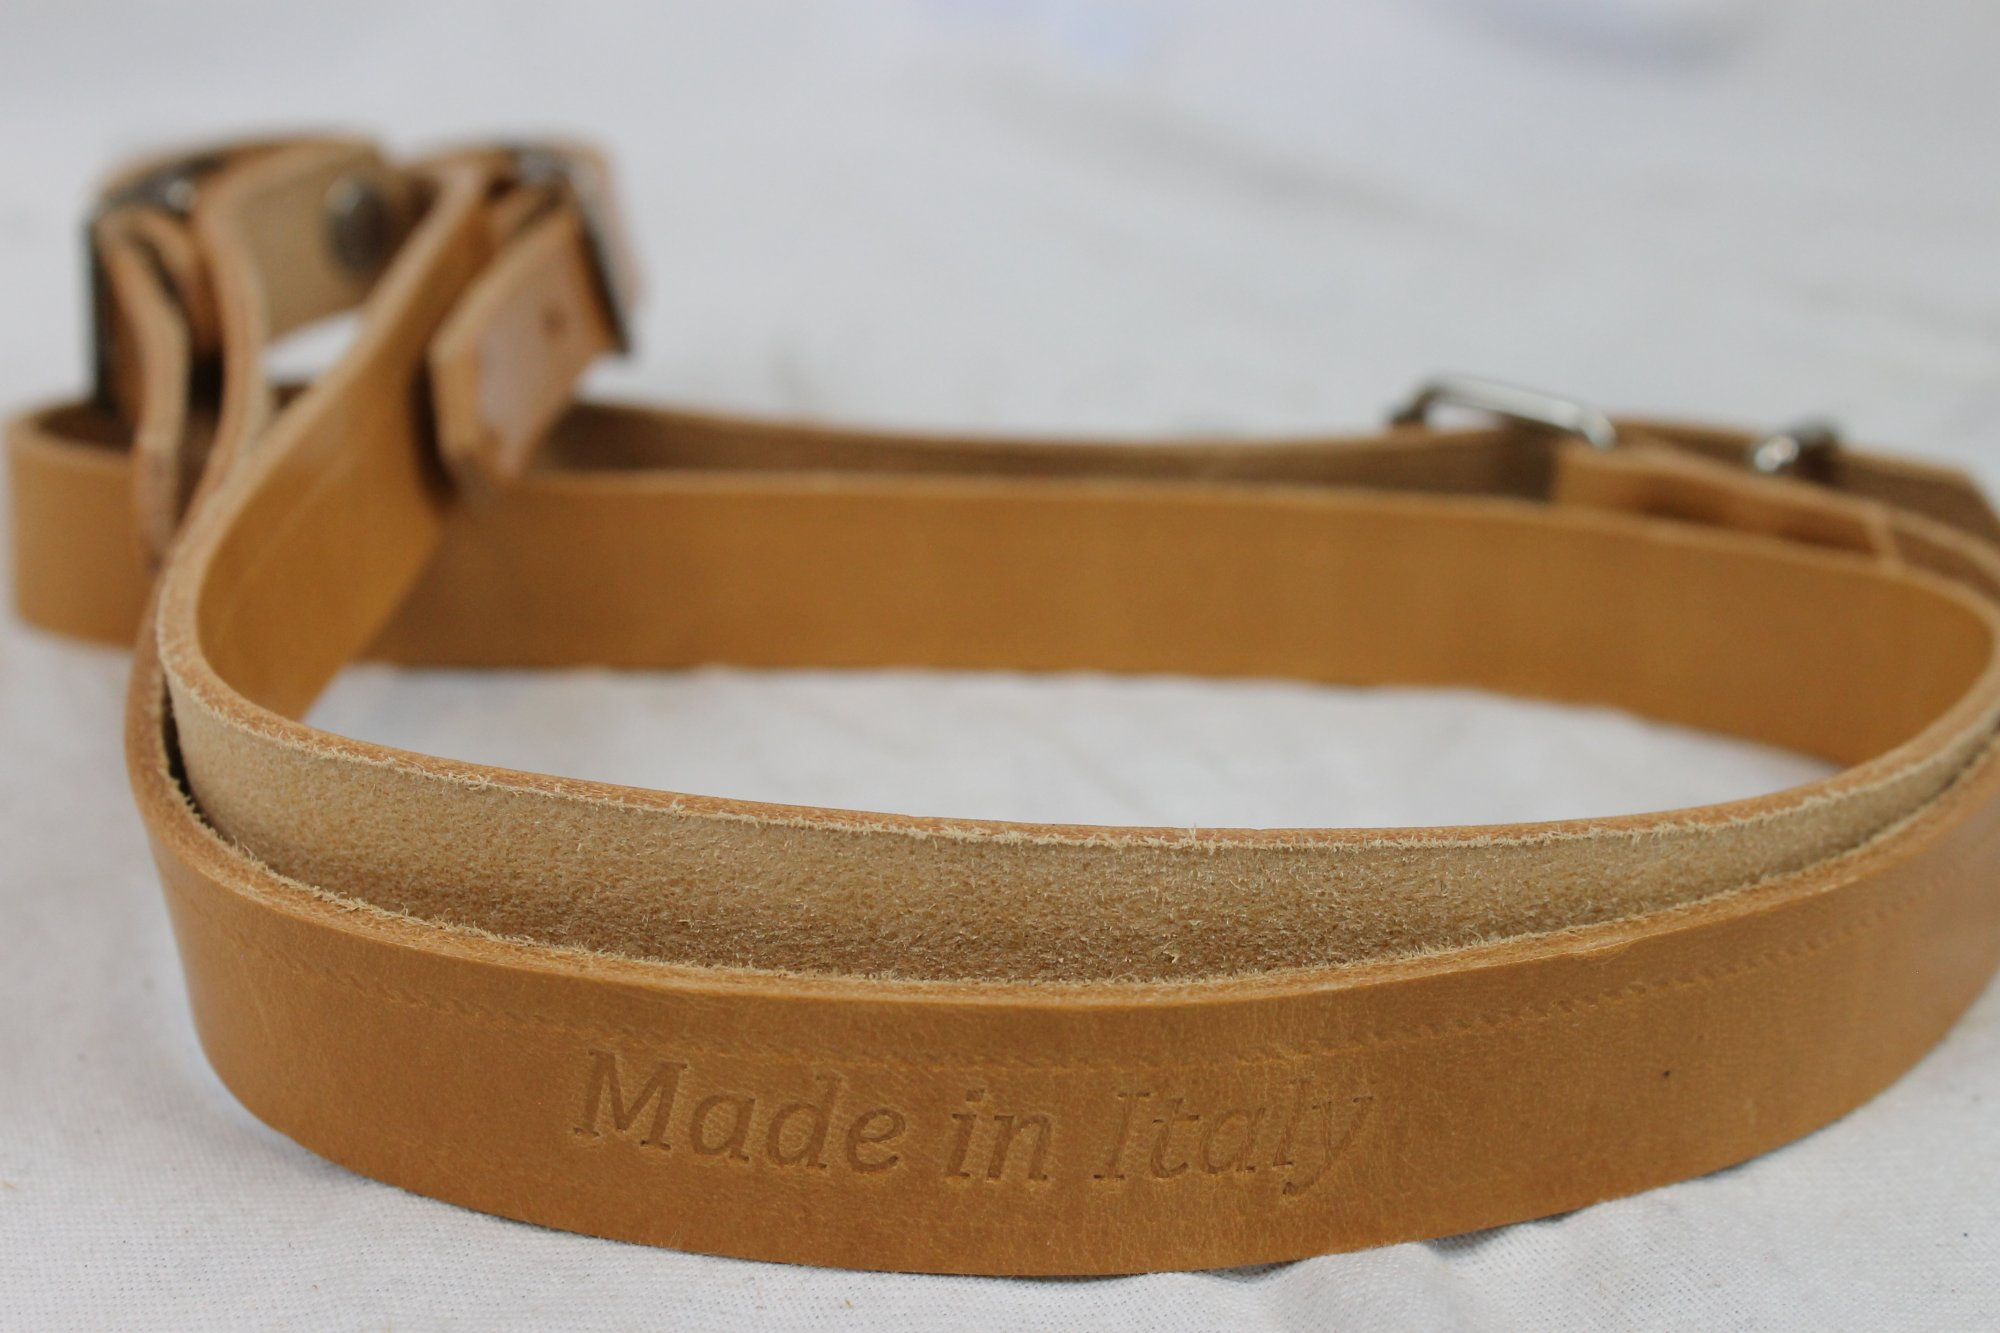 New Tan Leather Fuselli Diatonic Single Accordion Shoulder Strap Width (2cm / 0.75in) Length (100~115cm / 39.5~41.5in)